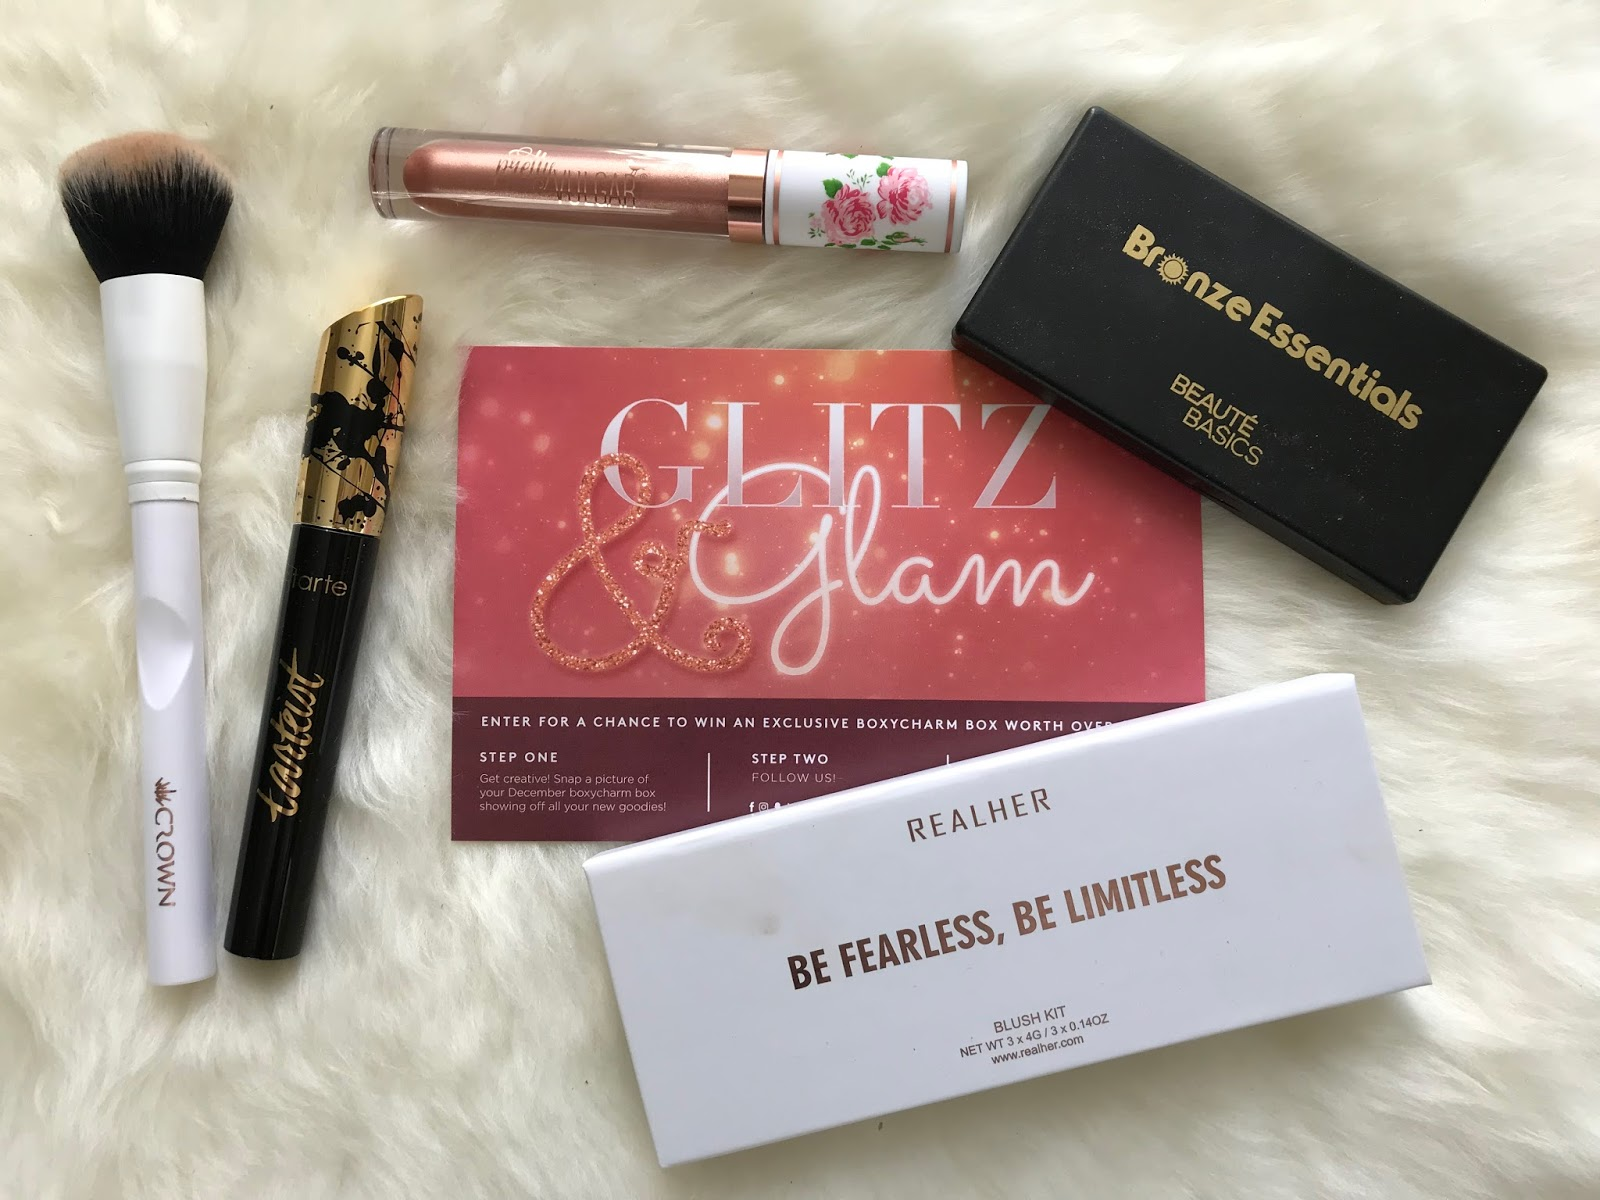 Boxycharm December 2017, Priya the Blog, Nashville beauty blog, beauty, beauty buzz, Boxycharm, subscription box, Tarte, Crown Brush Deluxe Blush Brush, Tarte tarteist Lash Paint mascara, Crown Brush, RealHer, RealHer Blush Kit, Beauté Basics, Beauté Basics Bronze Essentials Palette, Pretty Vulgar, Pretty Vulgar Liquid Lipstick in Secret Sabotage,